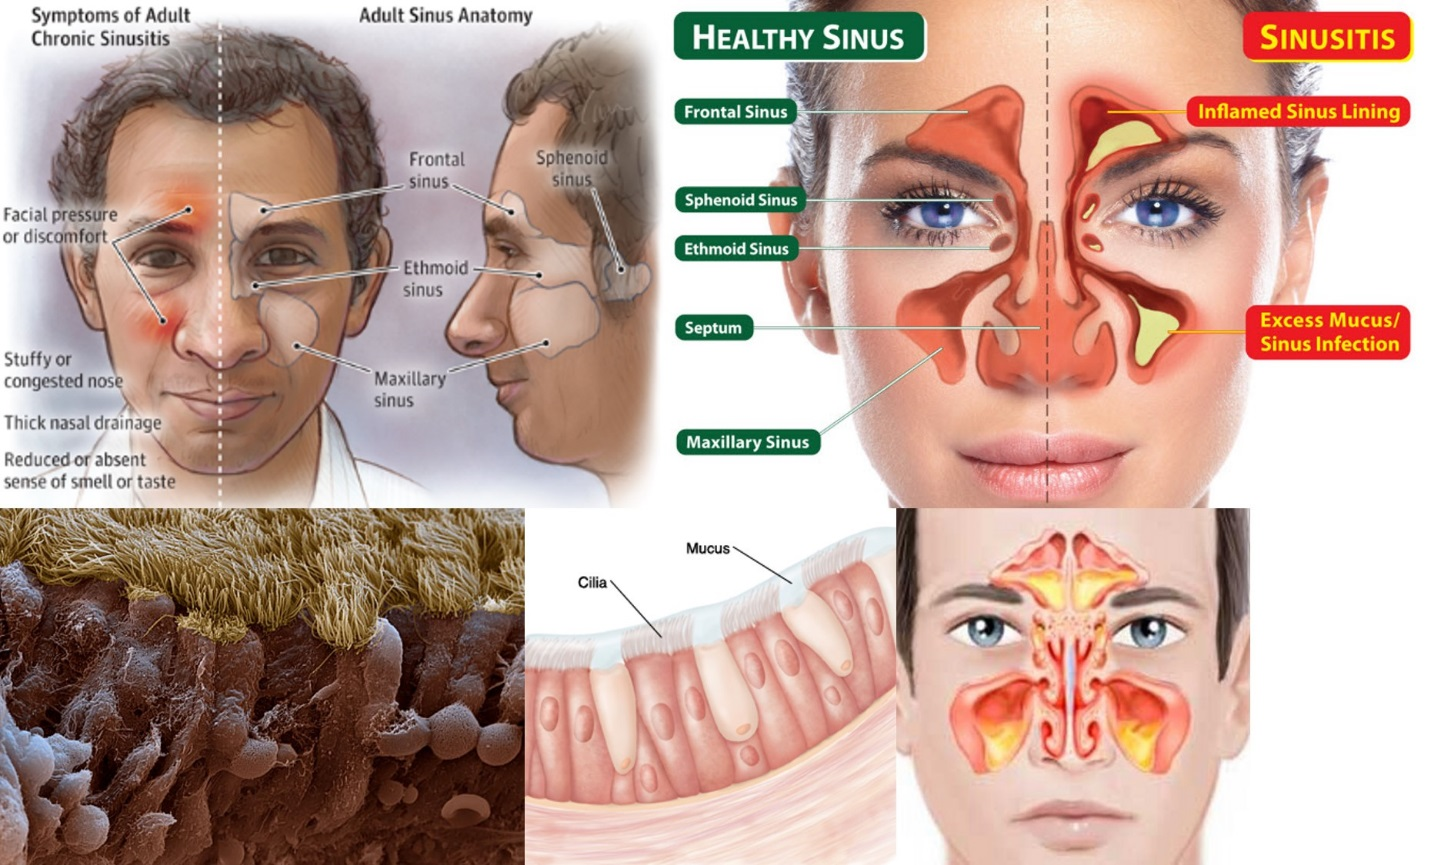 Sinus infection symptoms - irosh.info